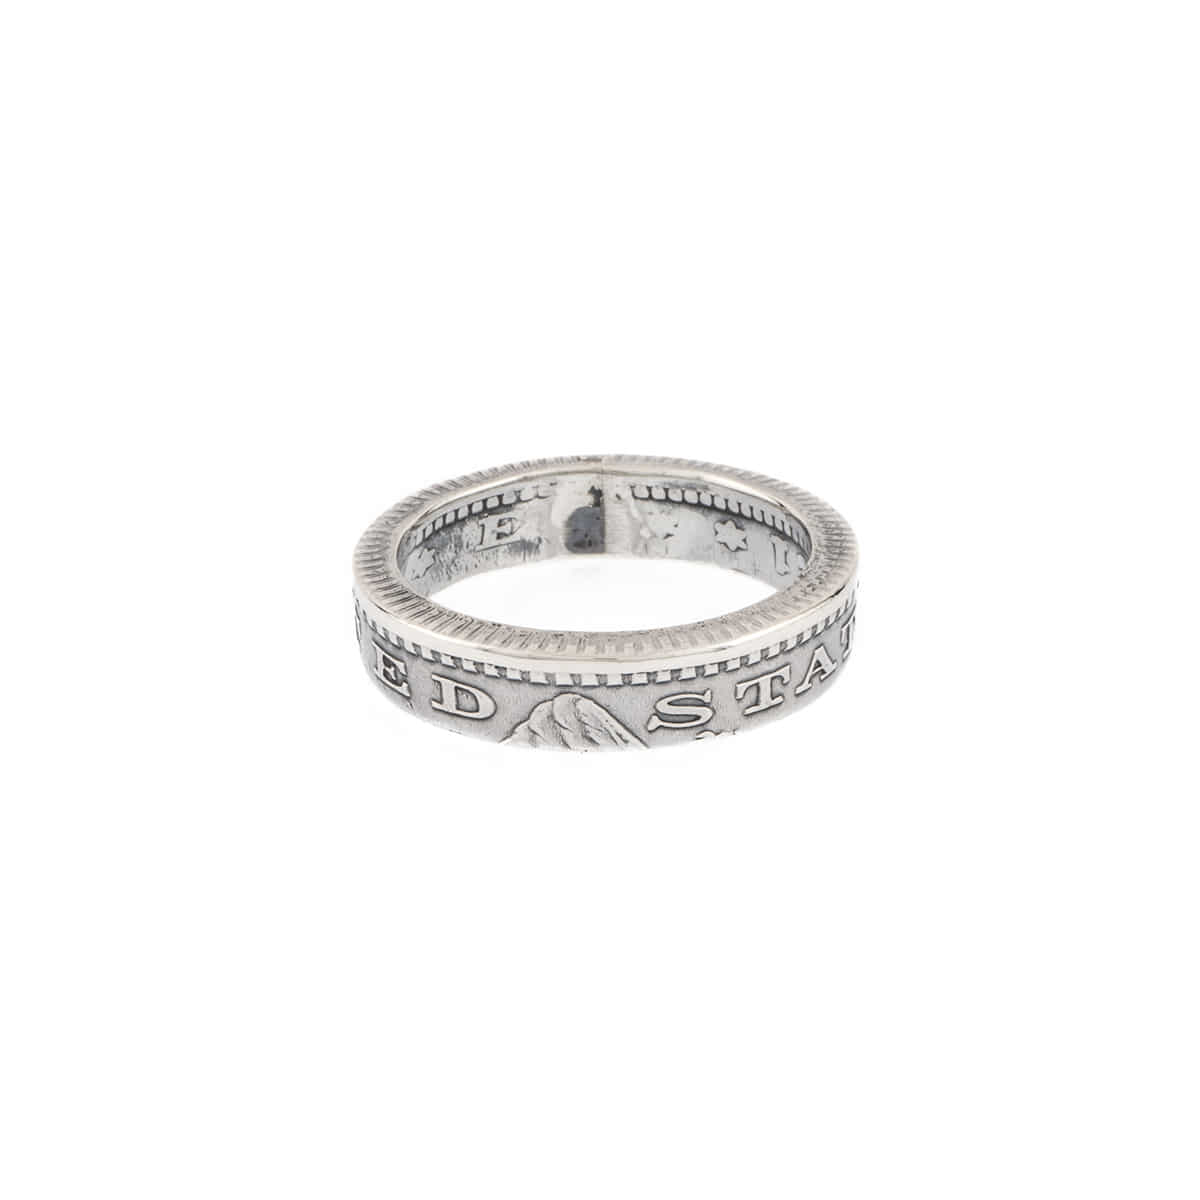 [NORTH WORKS] 900 SILVER RING 'N-059'